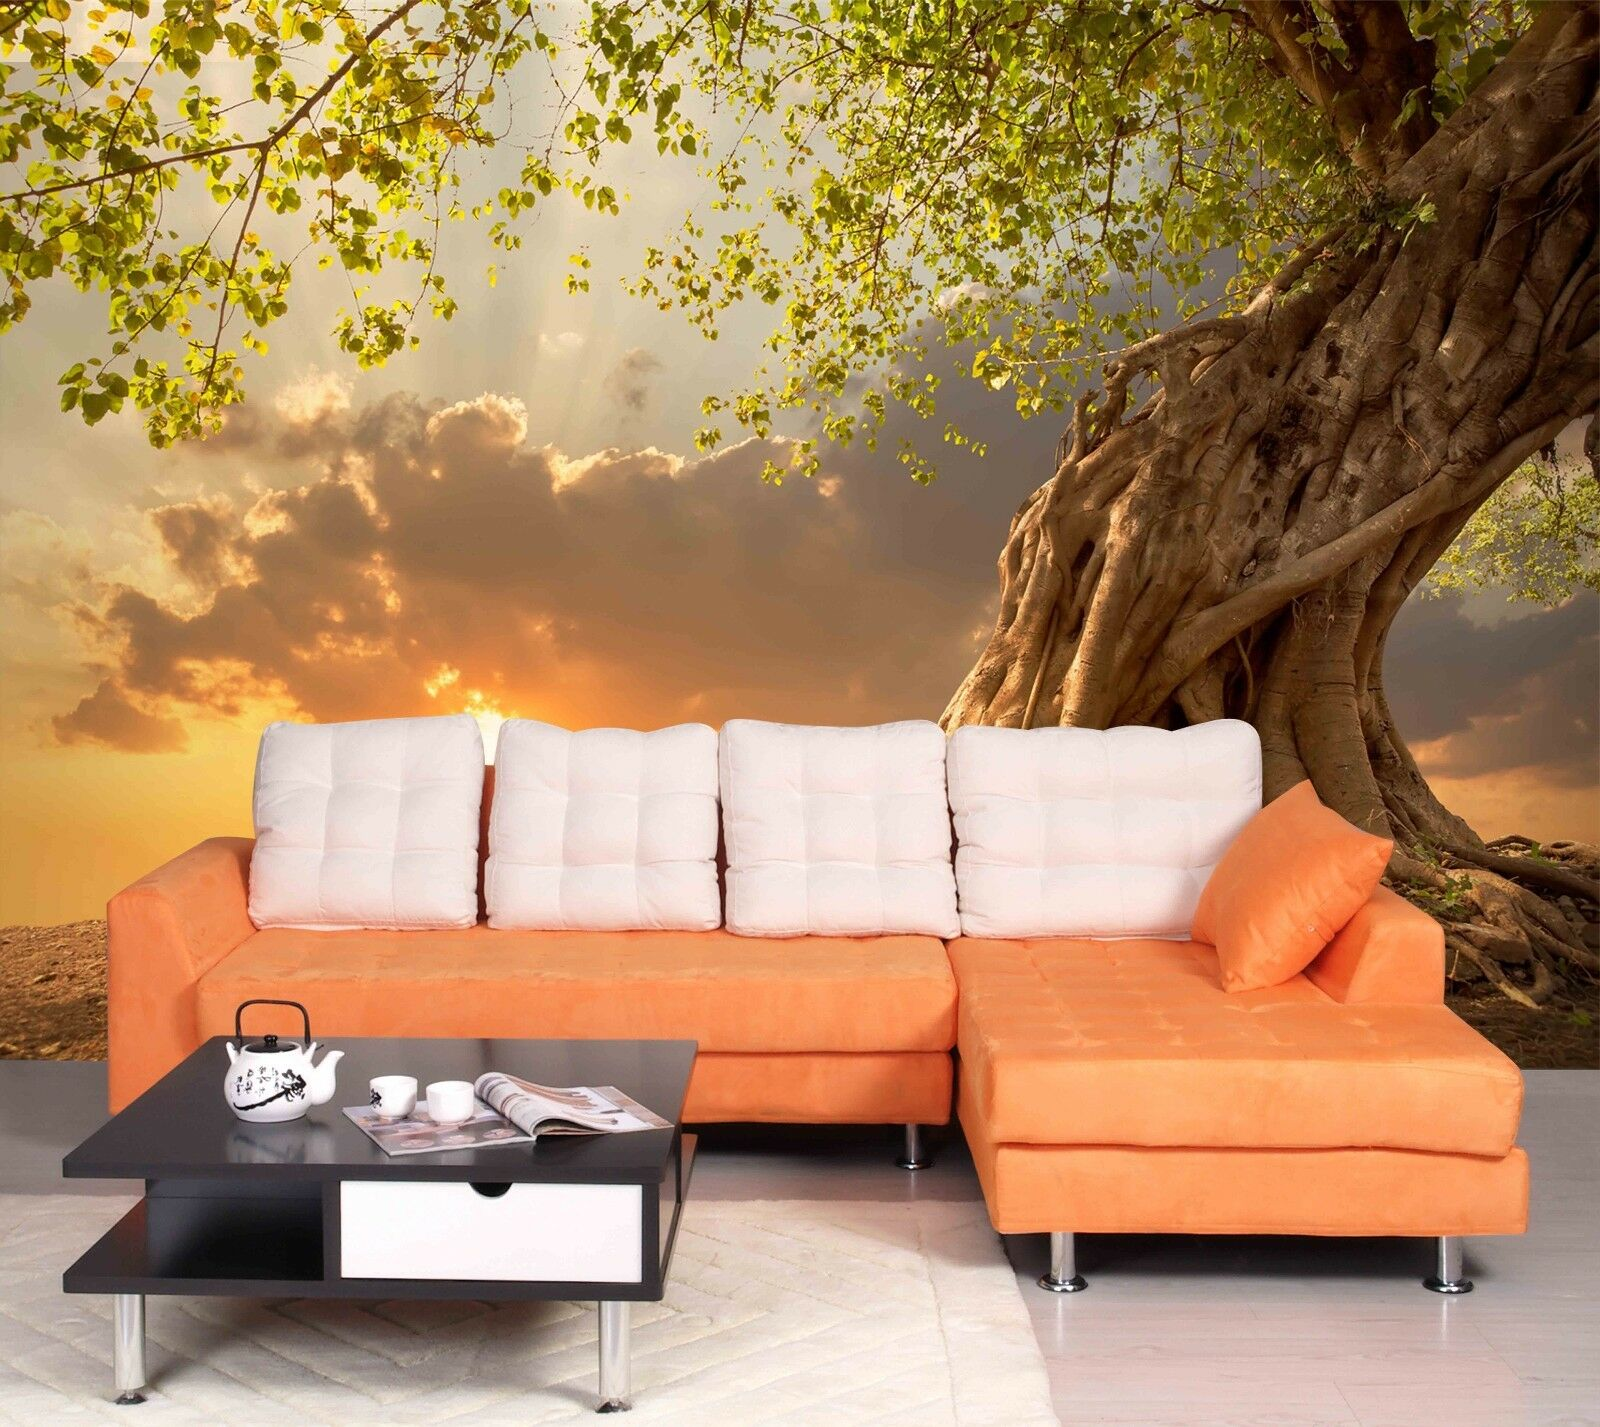 3D Sunset Tree 1033 WallPaper Murals Wall Print Decal Wall Deco AJ WALLPAPER